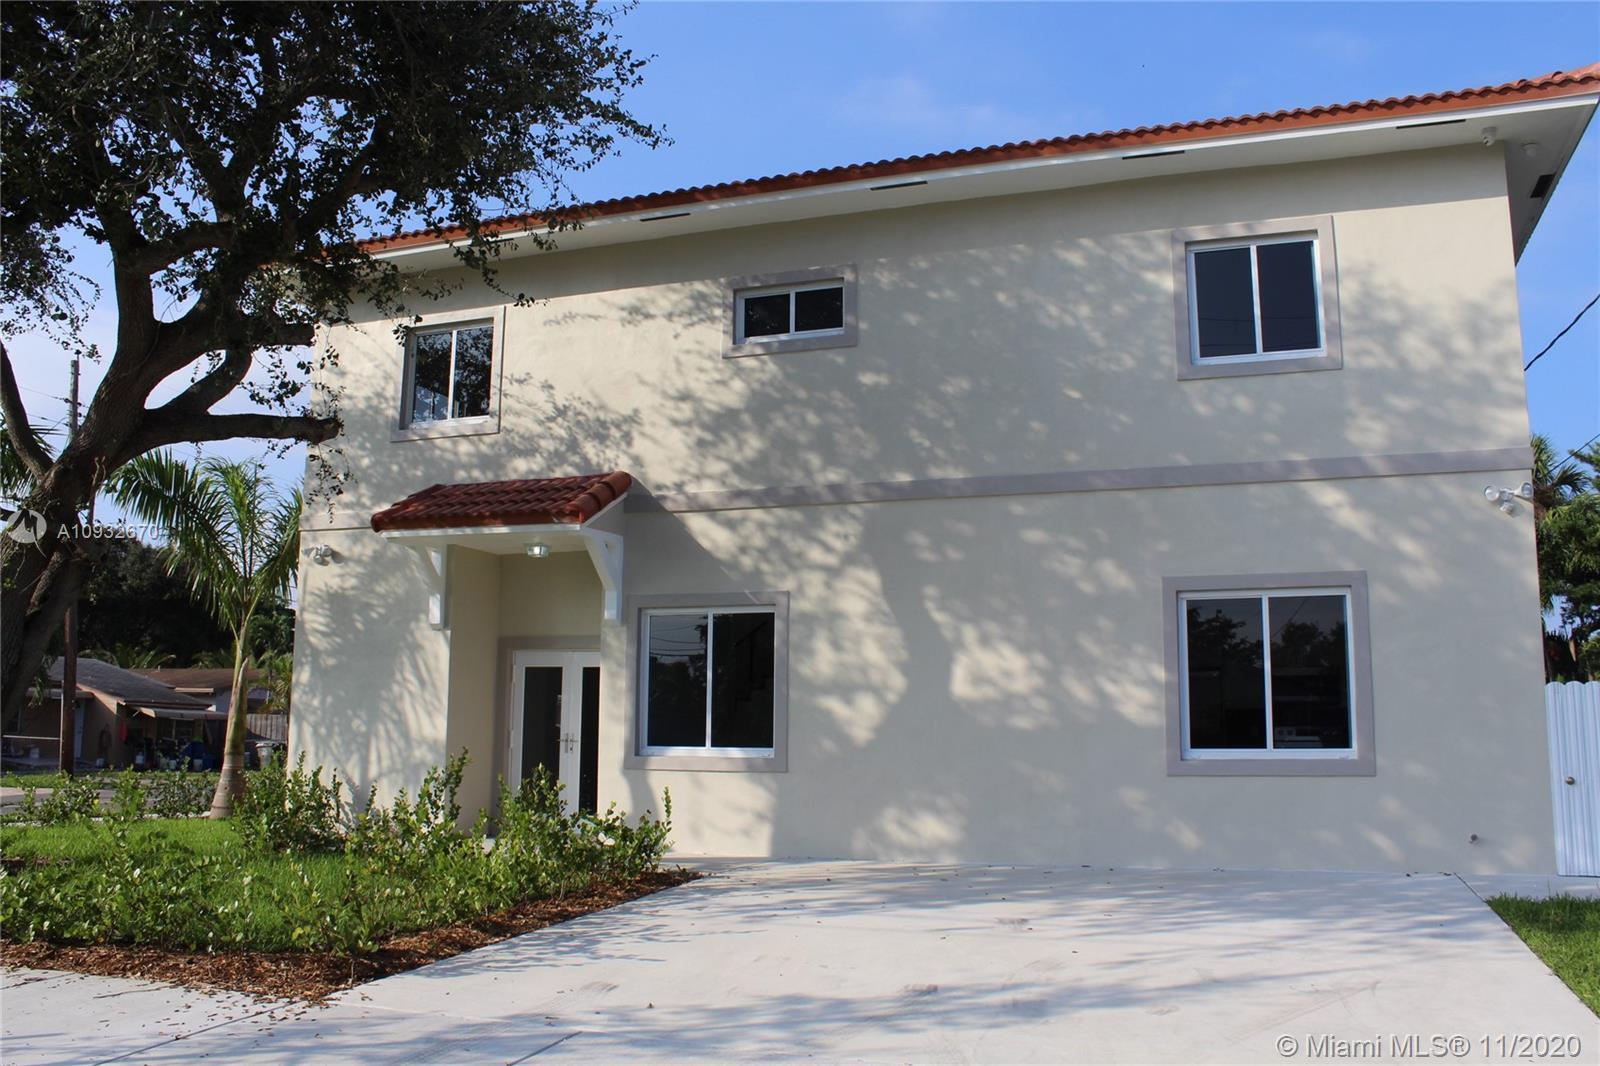 2 STORY TWINHOME UNDER CONSTRUCTION. 4 BEDROOM 4.5 BATHS WITH LOTS OF UPGRADES IN HALLANDALE. CLOSE